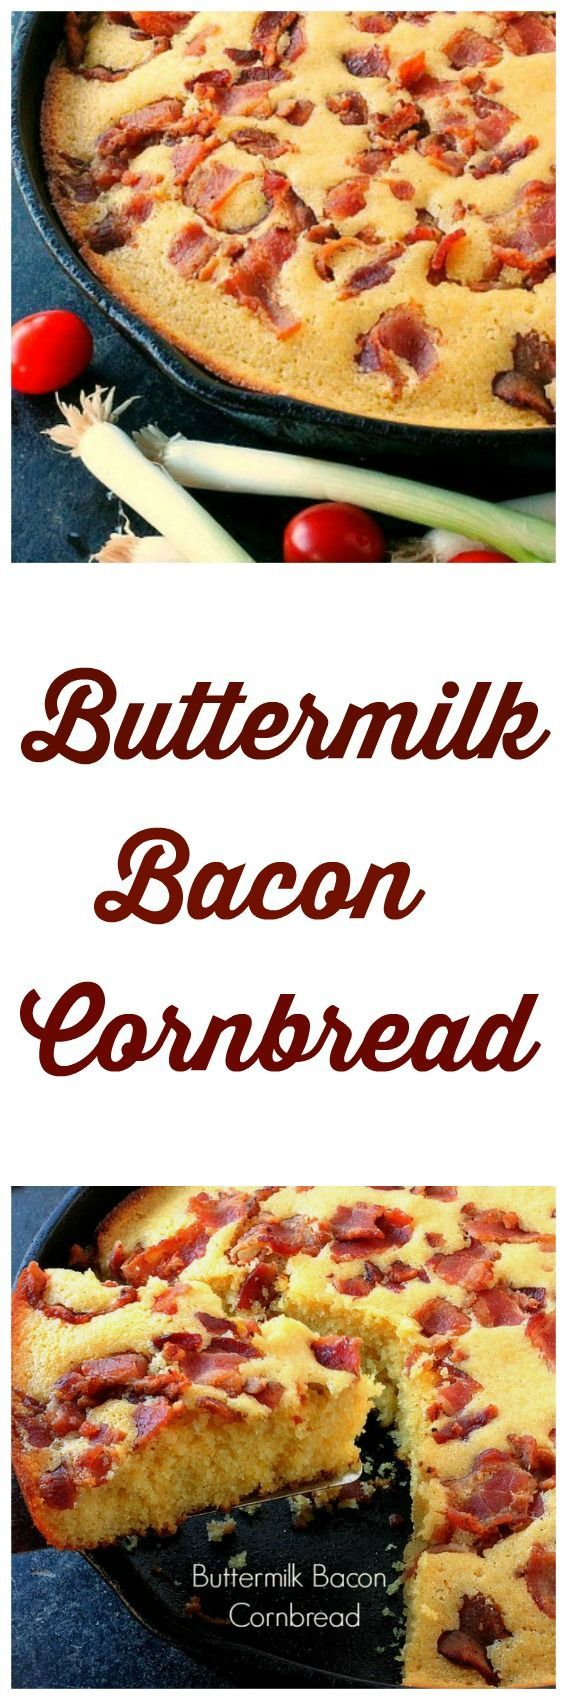 Buttermilk Bacon Cornbread... Moist delicious and topped with lots of Bacon